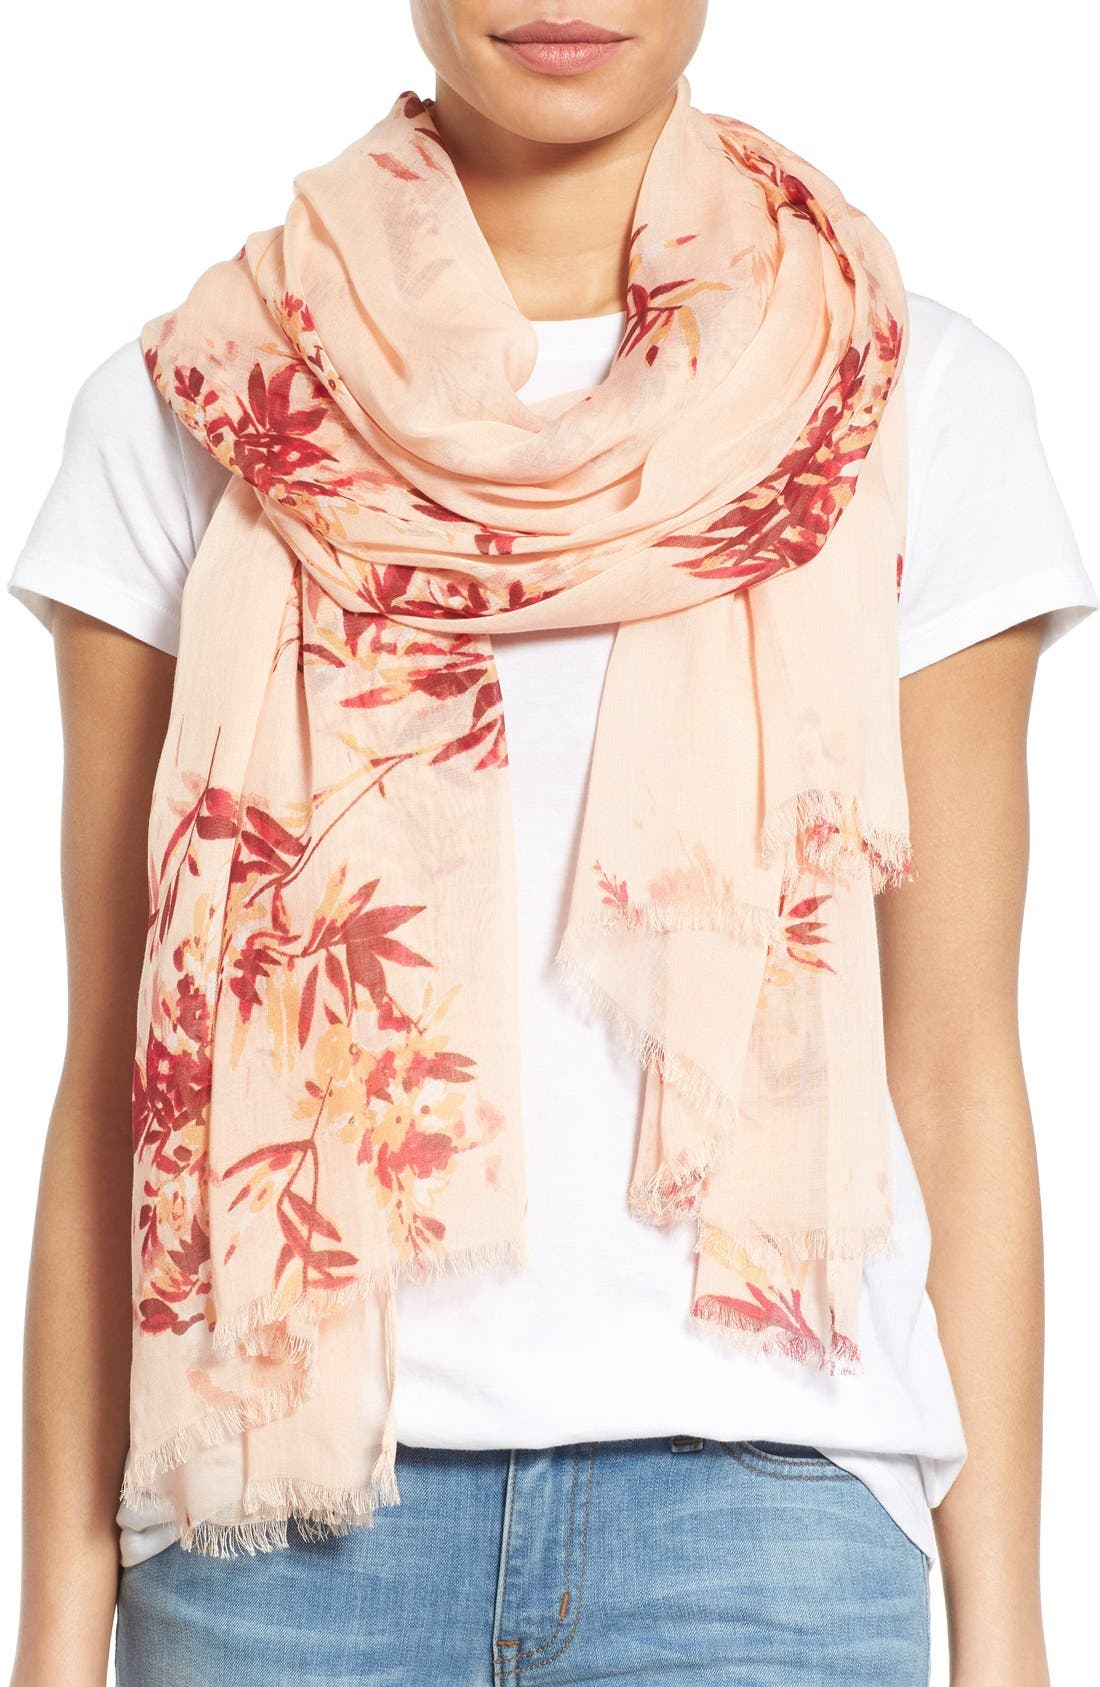 Main Image - Nordstrom 'Blurred Blossoms' Scarf